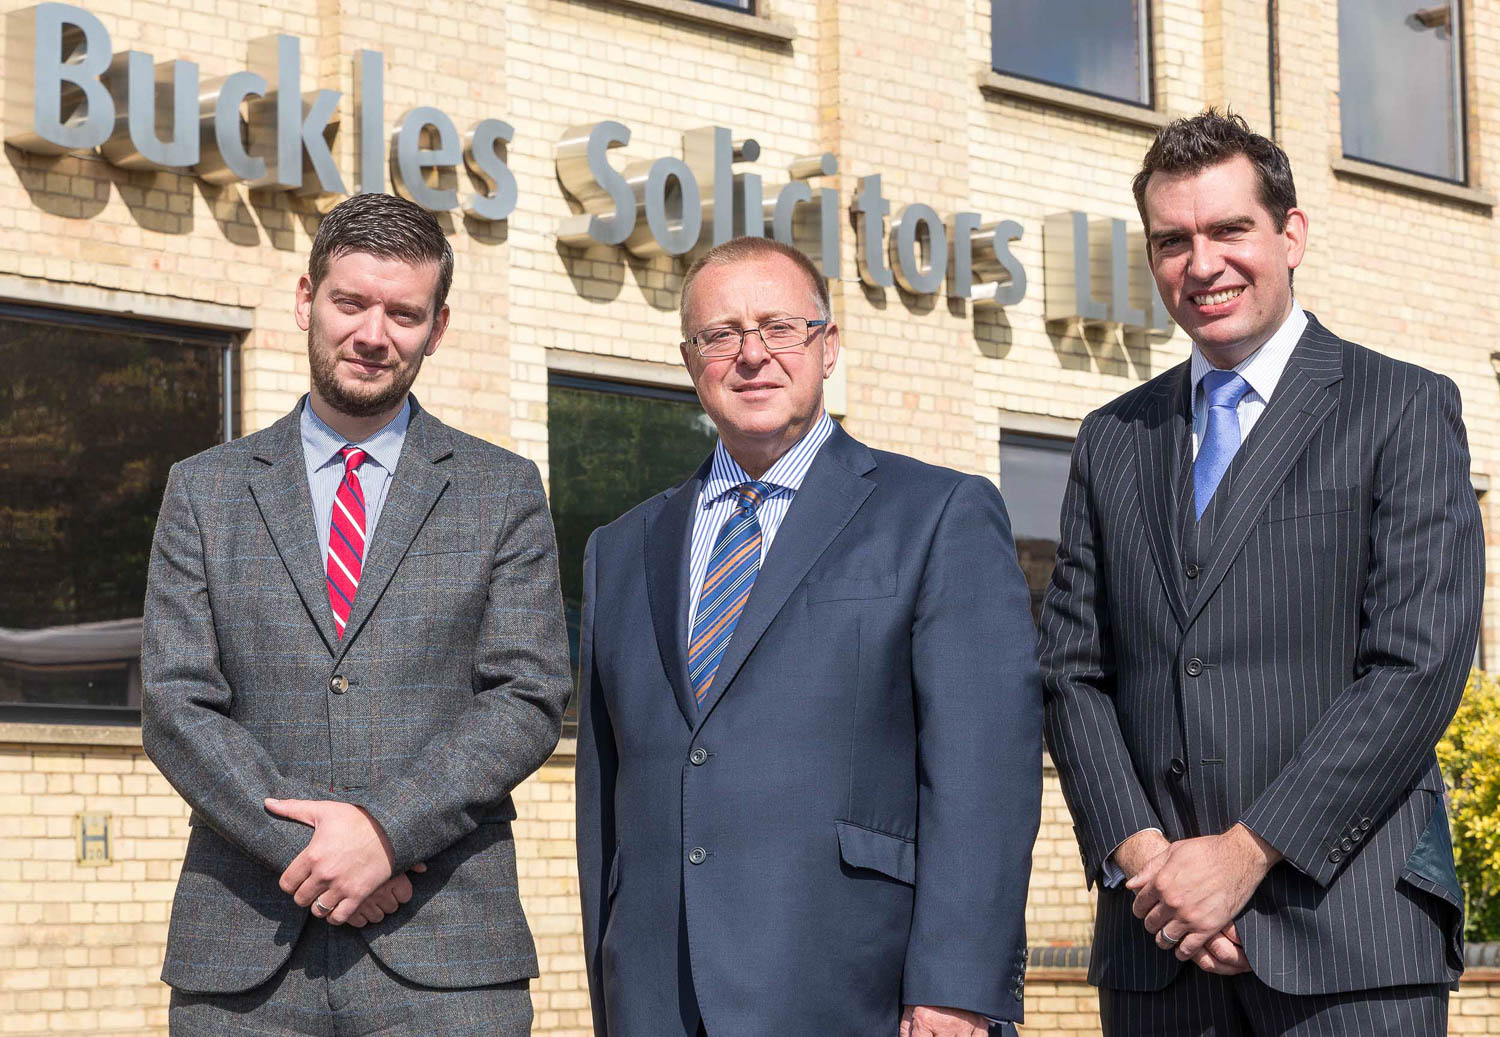 Buckles Solicitors Photo Shoot